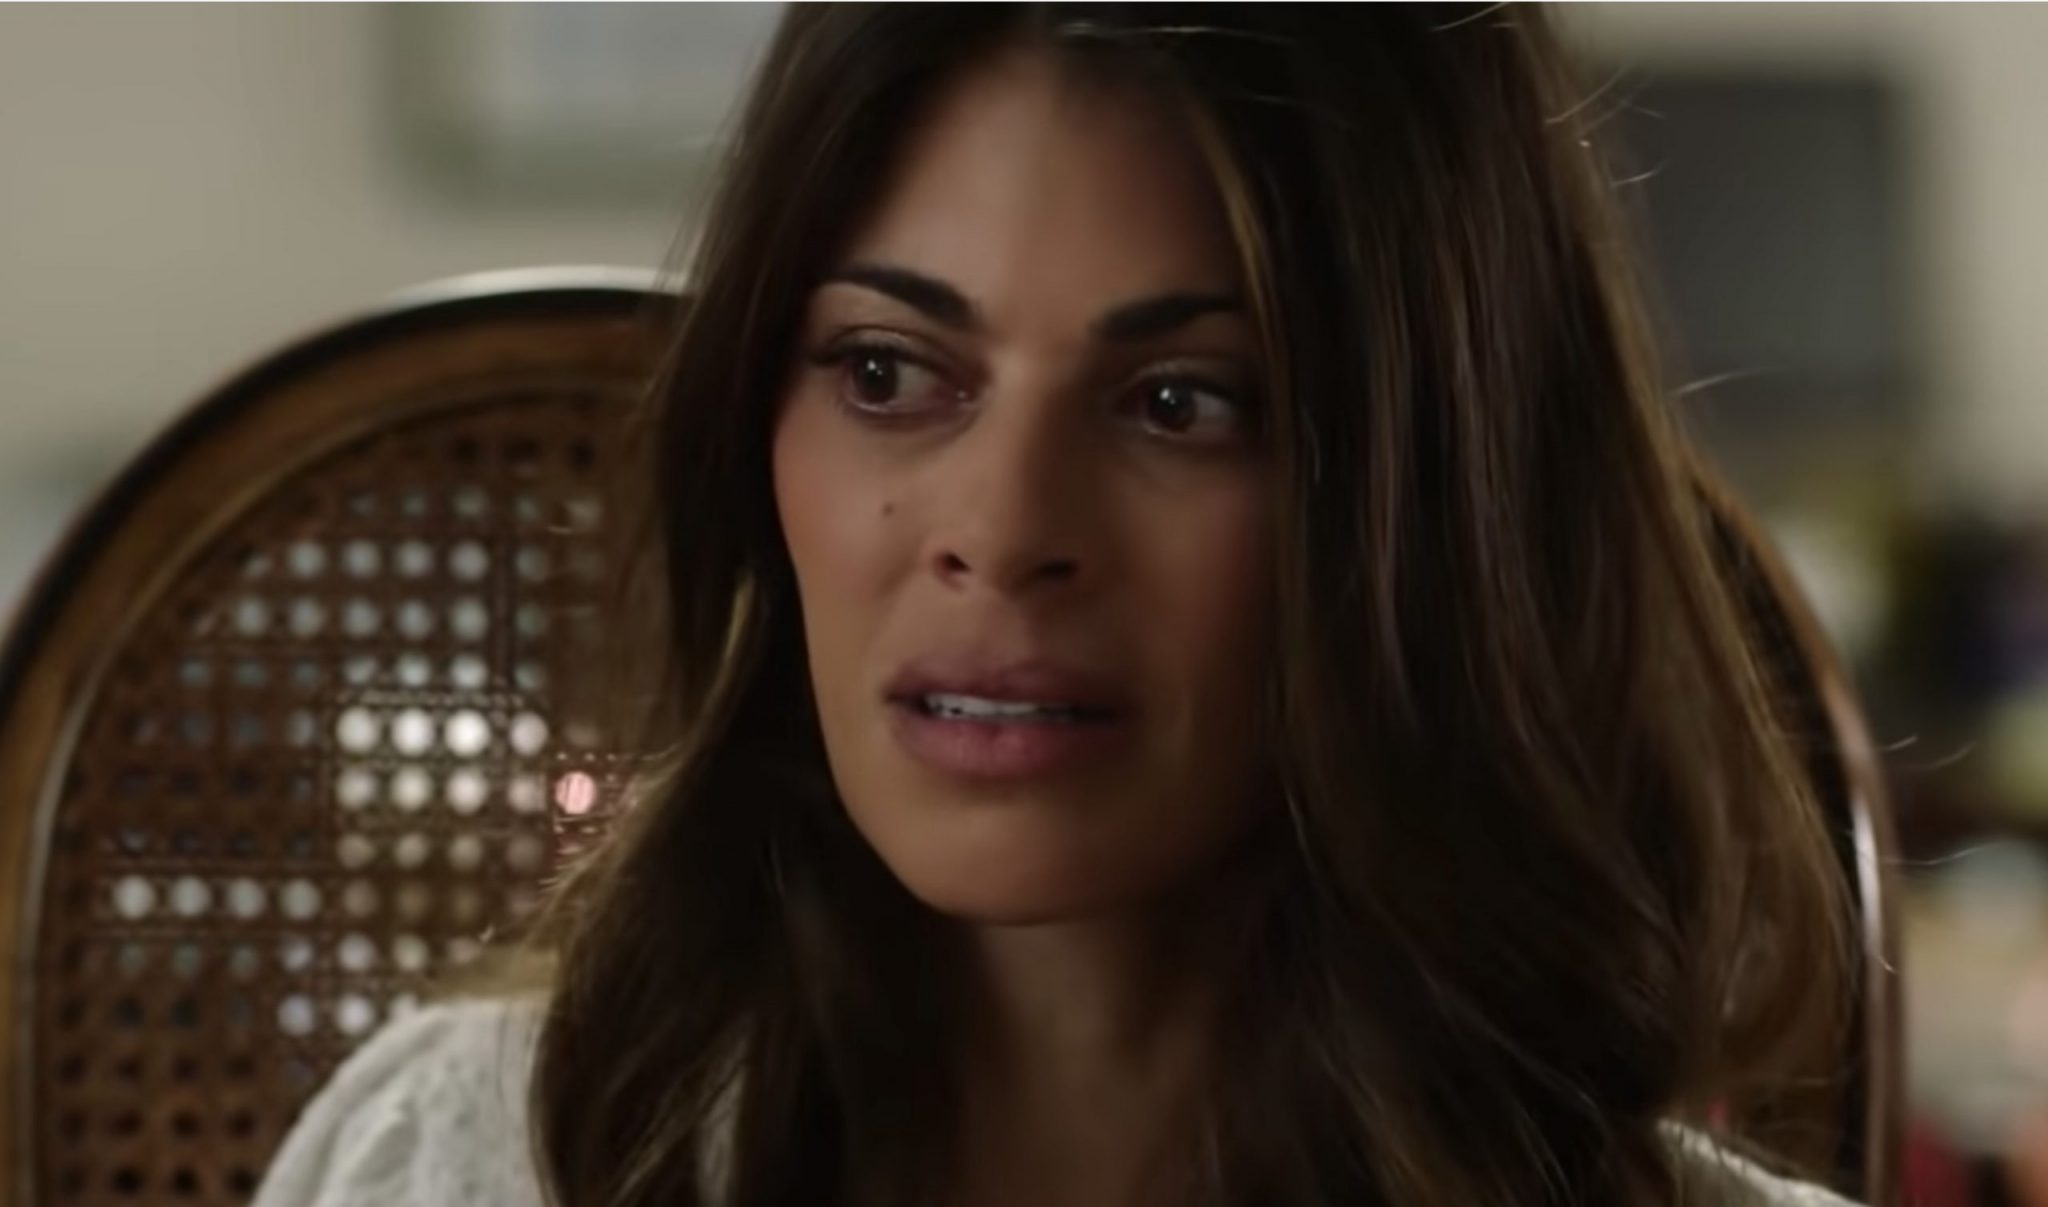 Deadliest Switch, Lindsay Hartley, Lifetime Movie-https://www.youtube.com/watch?v=Bmc4SjUTLco